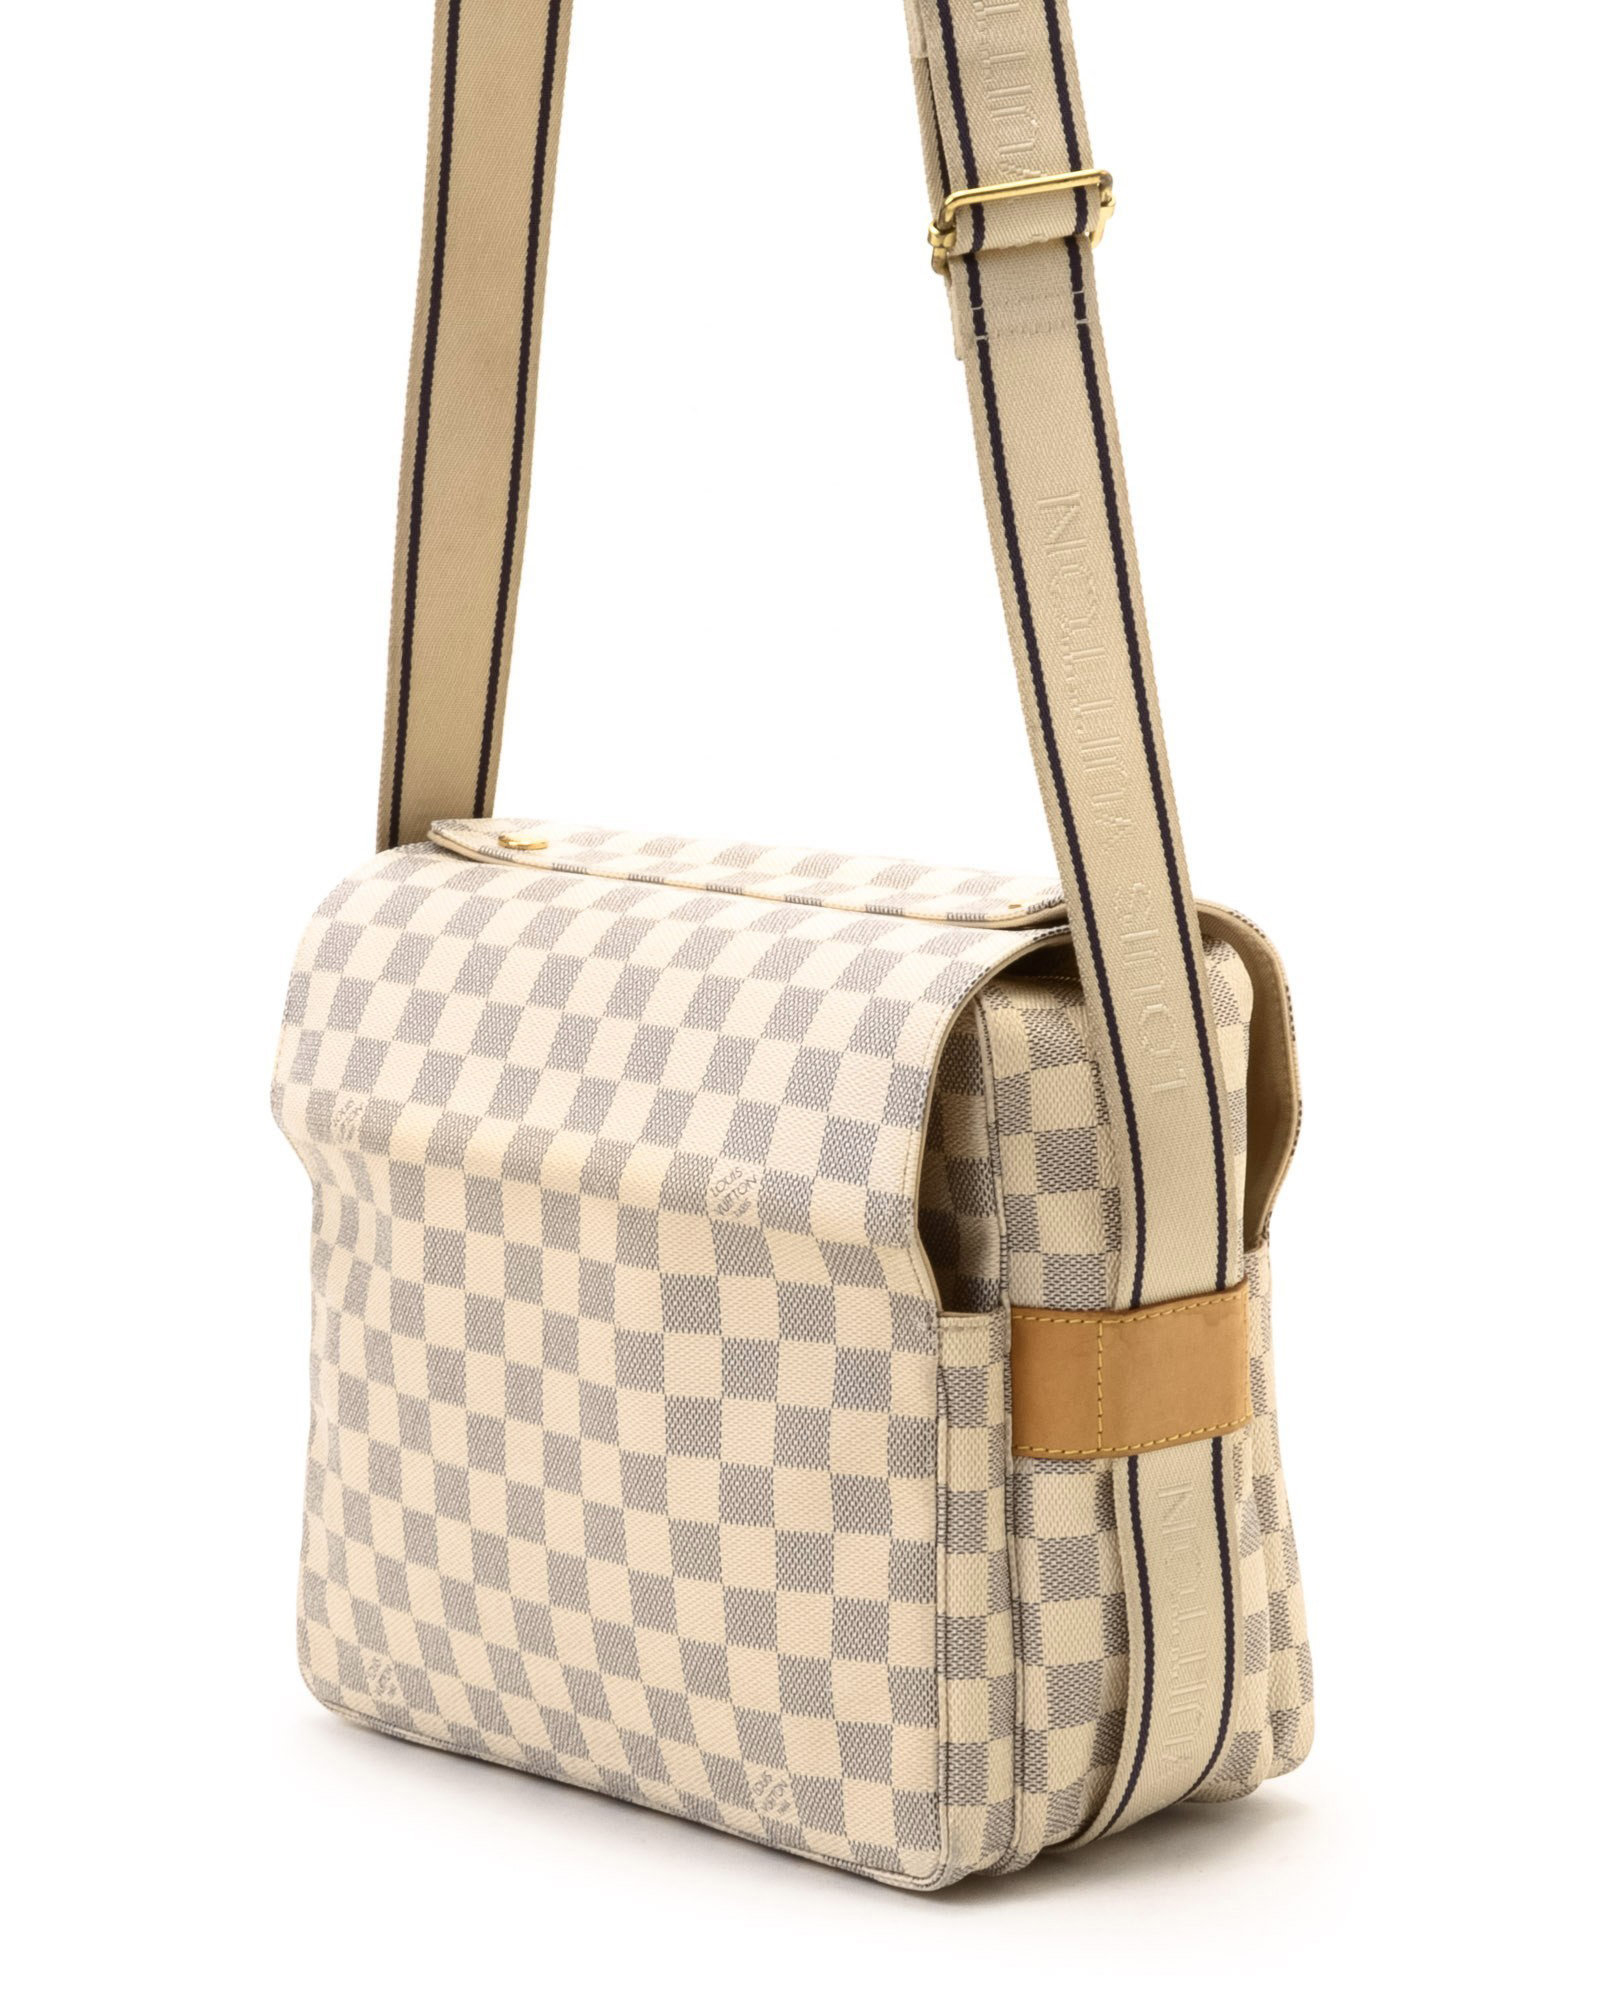 Wonderful KAITORIKOMACHI | Rakuten Global Market Louis Vuitton N41442 Olav PM Damier Messenger Bag ...